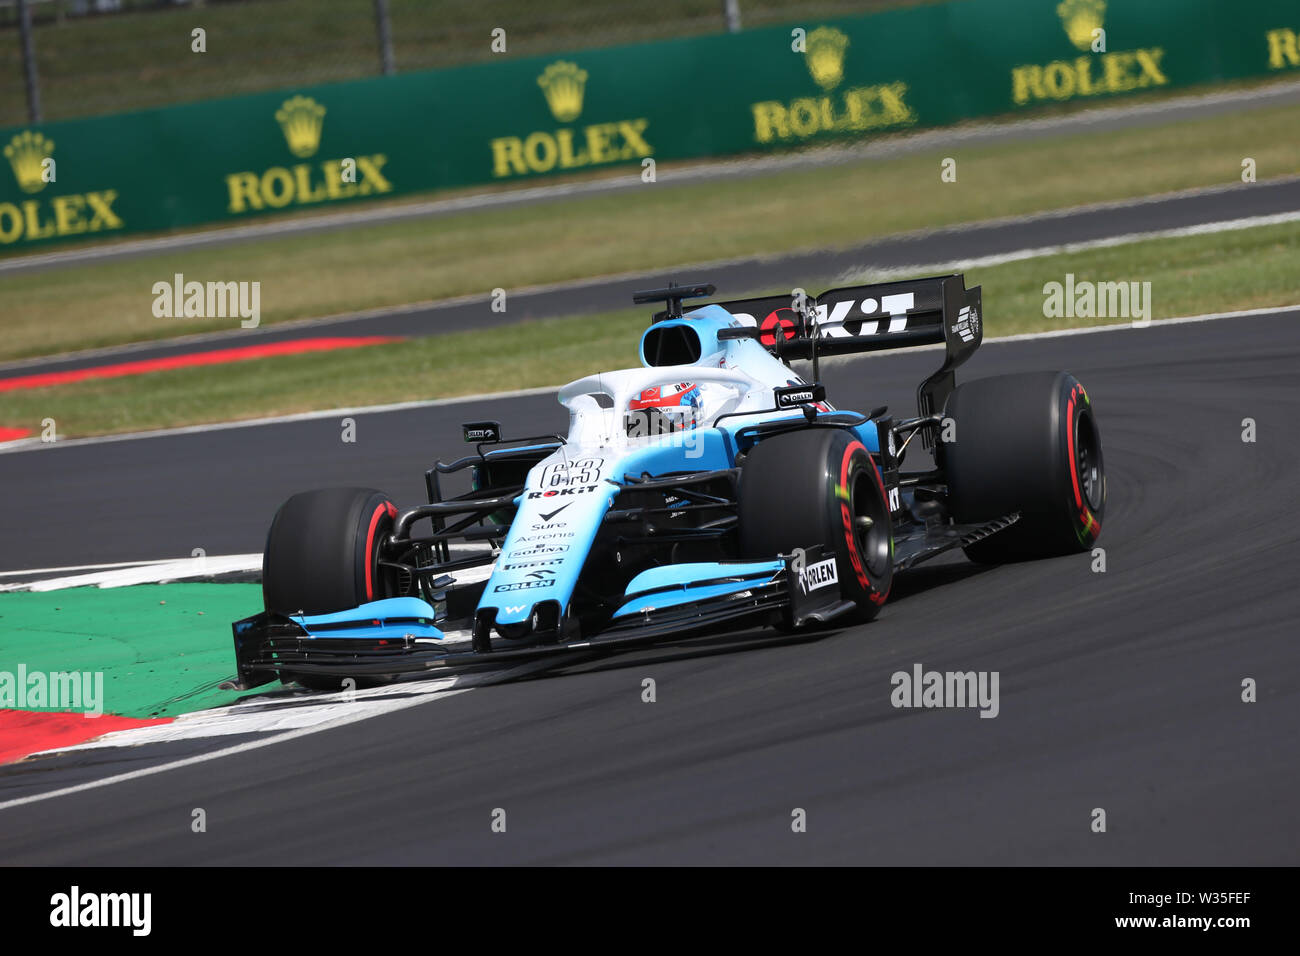 © Photo4 / LaPresse12/07/2019 Silverstone, England  Sport  Grand Prix Formula One England 2019 In the pic: free practice 2, George Russell (GBR) Williams F1 FW42 - Stock Photo